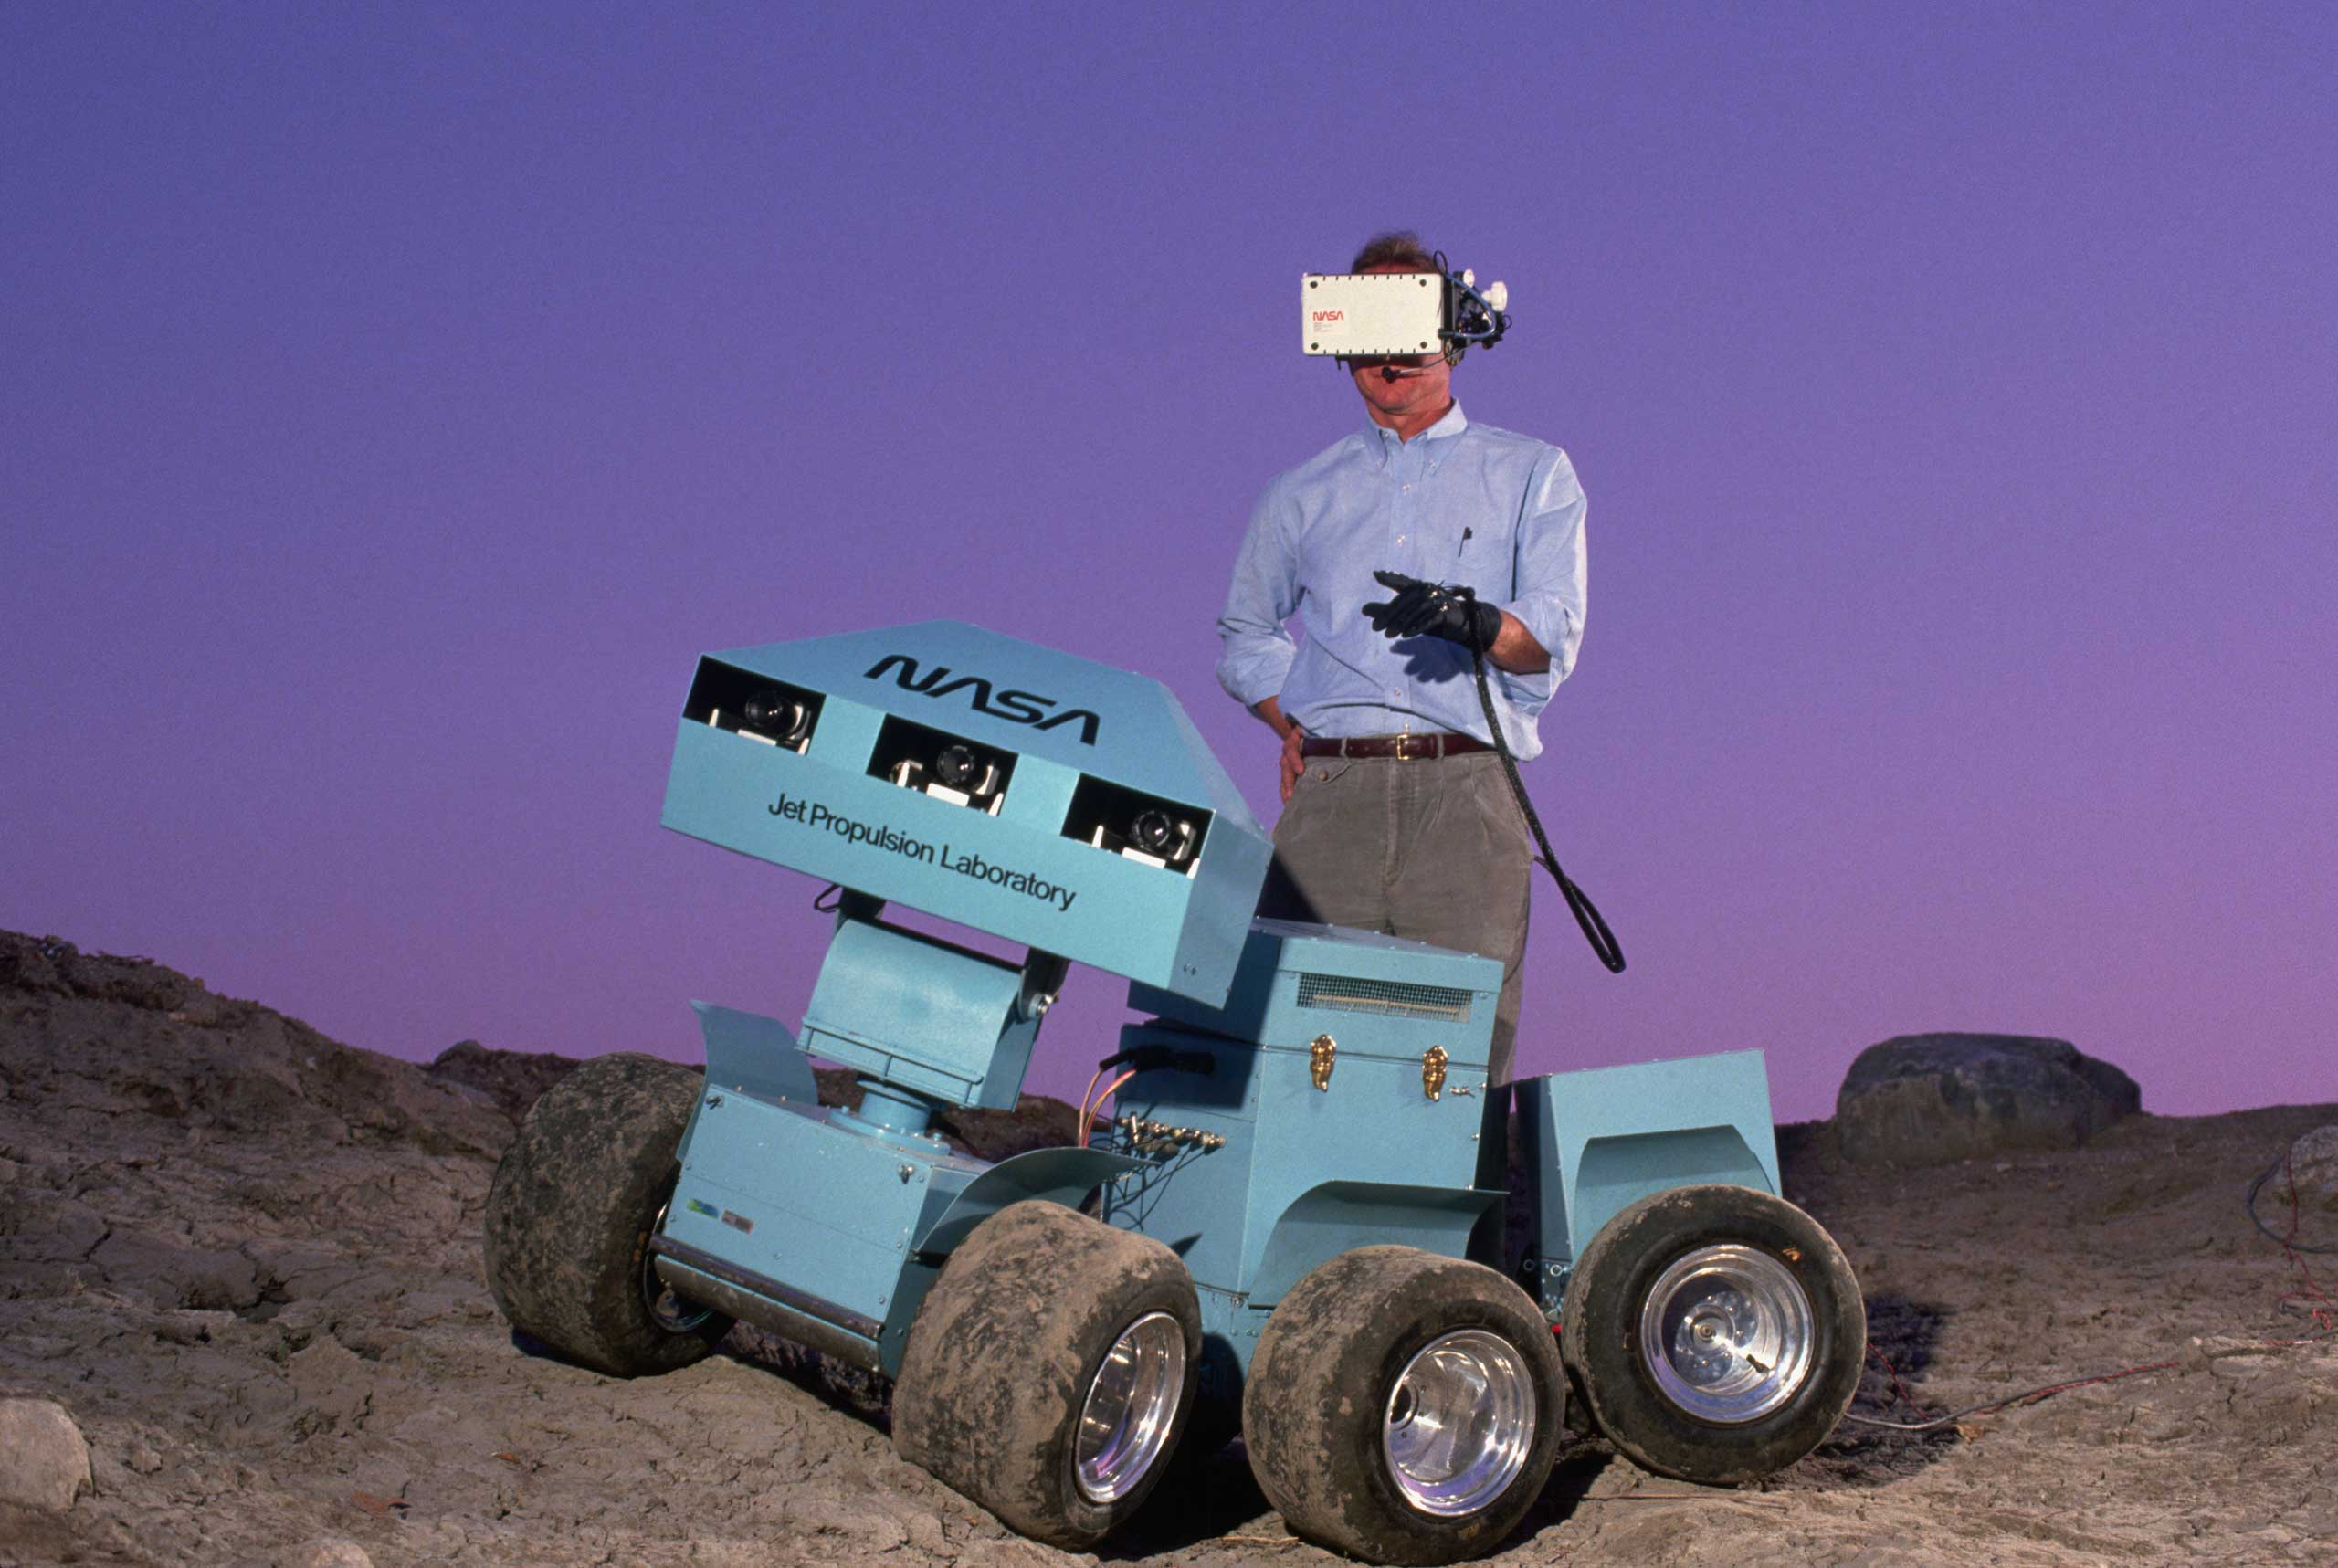 <strong>1988</strong>                                                                      Andrew Mishkin wearing a 3-D virtual display helmet that is connected to a six-wheeled roving vehicle. The rover was meant to explore the surface of Mars and send back information.